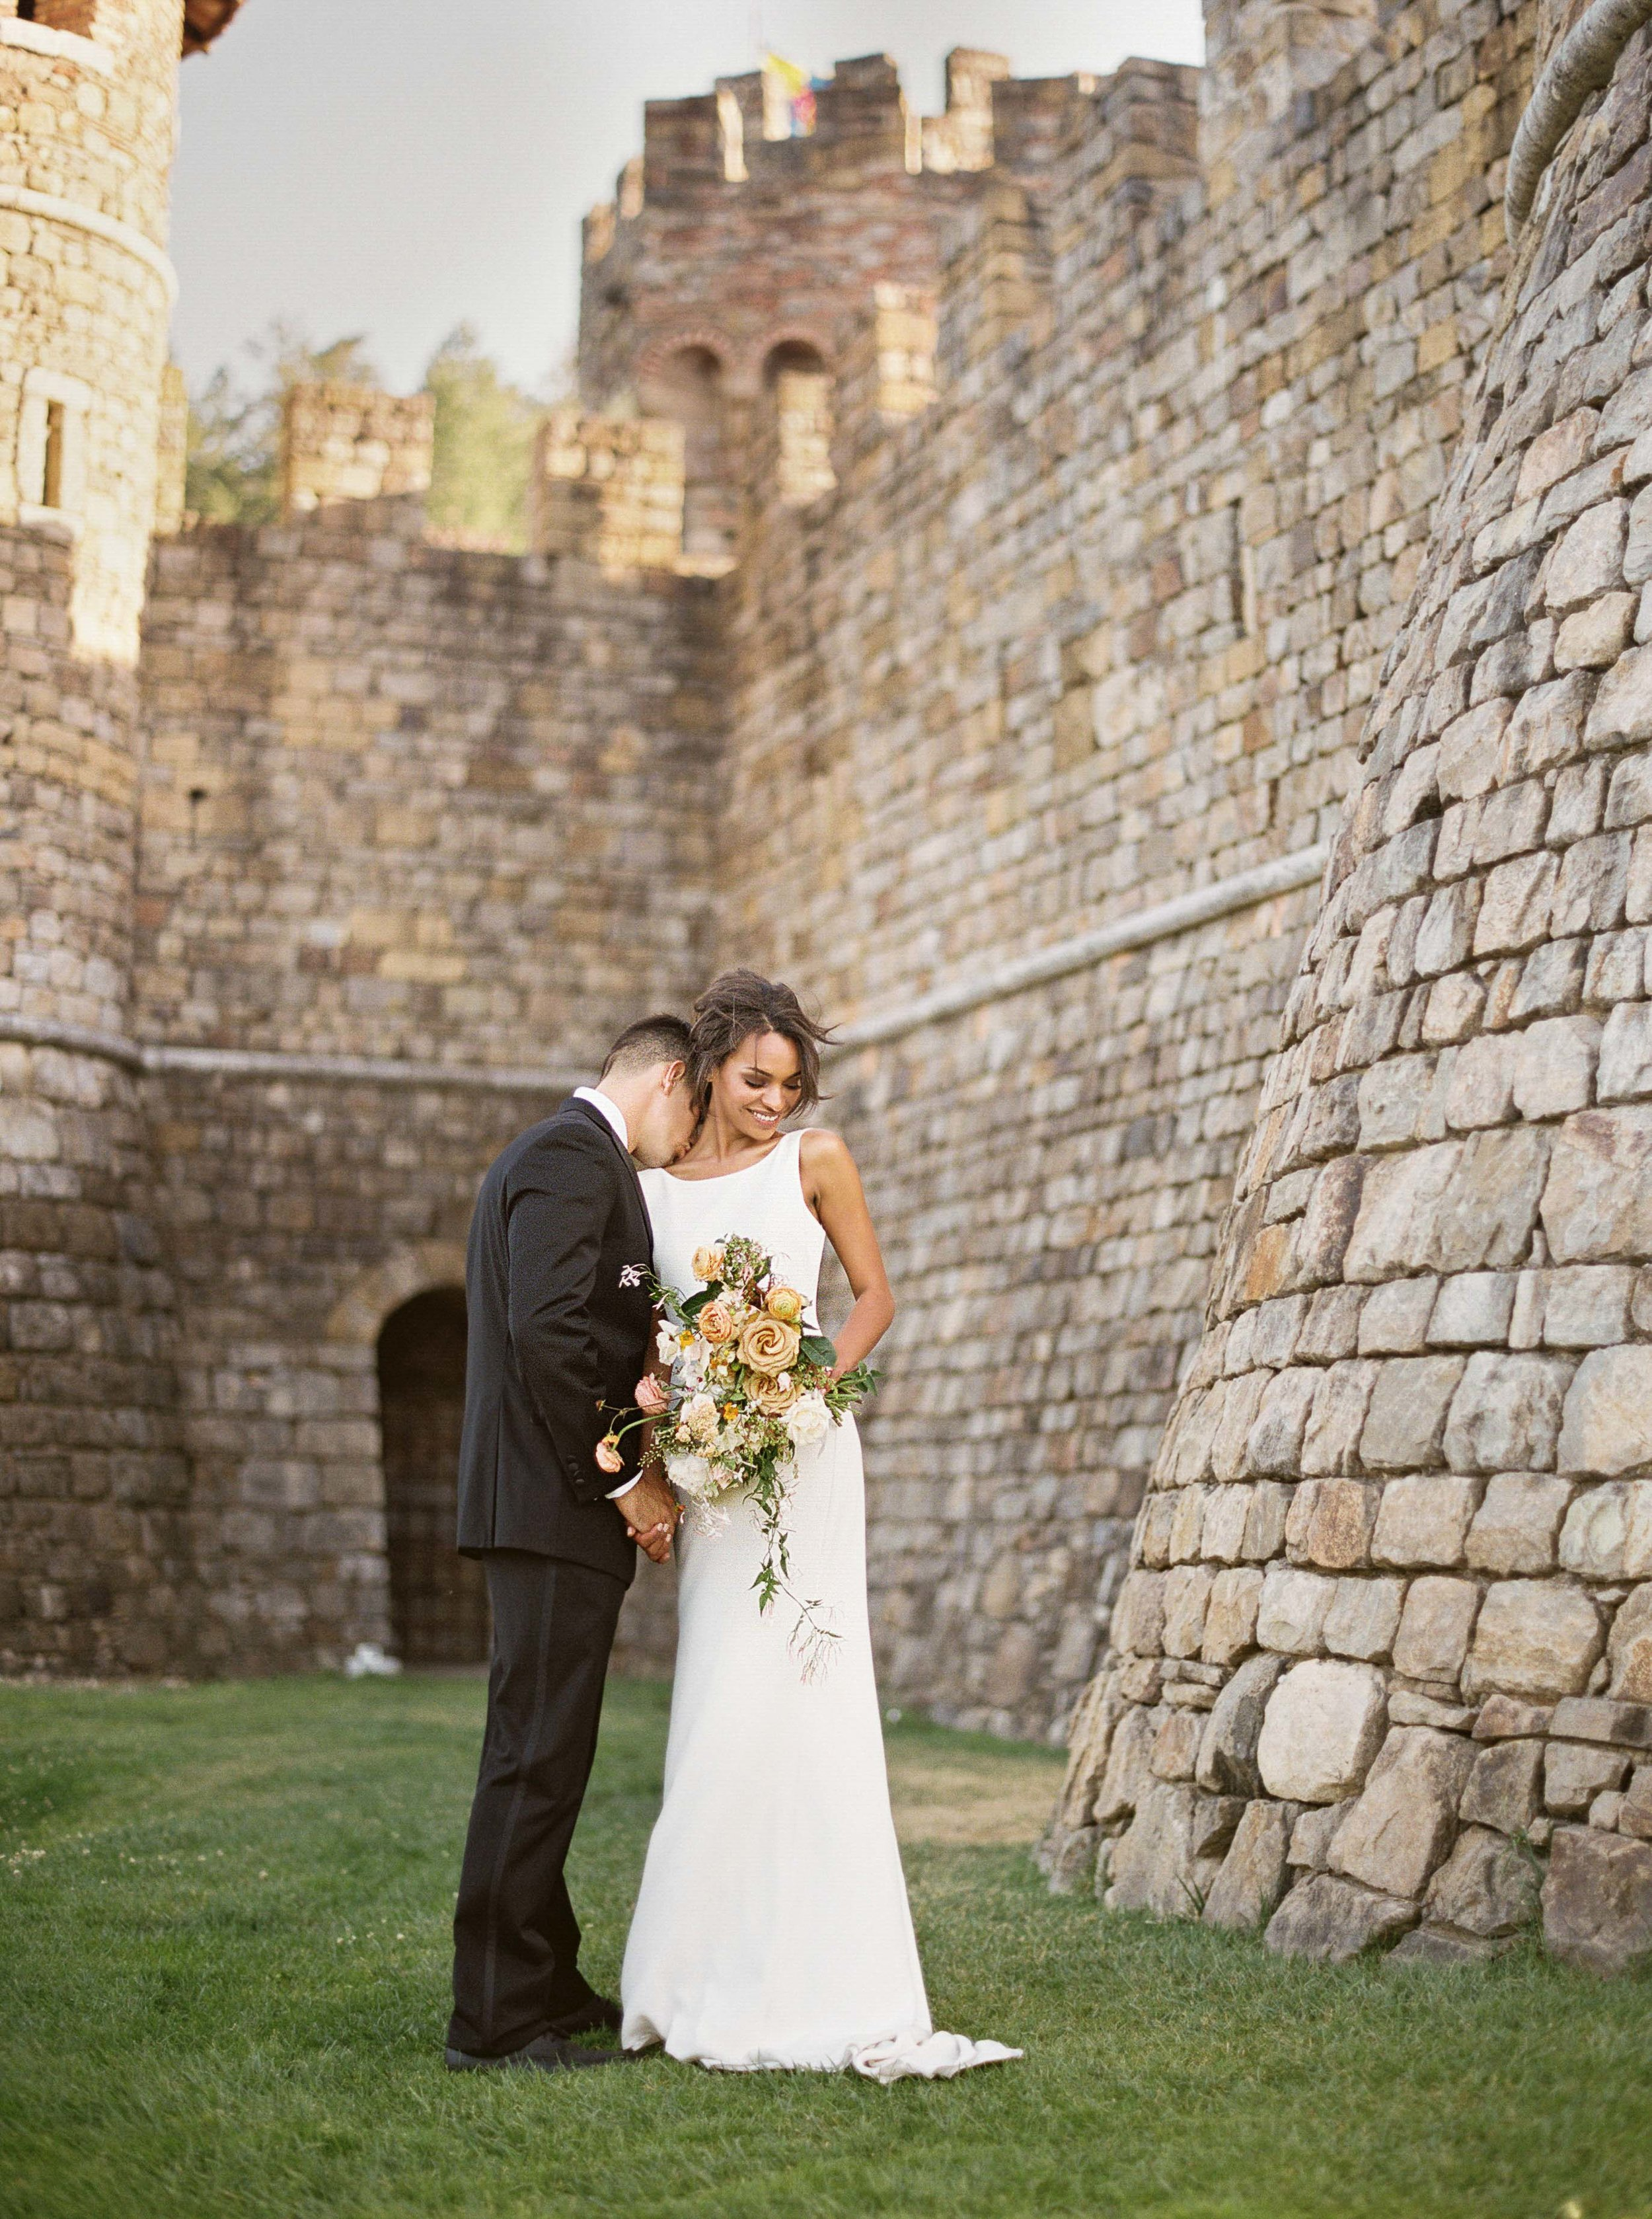 049napa_wedding_photographer_and_videographer_destination_and_elopement_photography.jpg